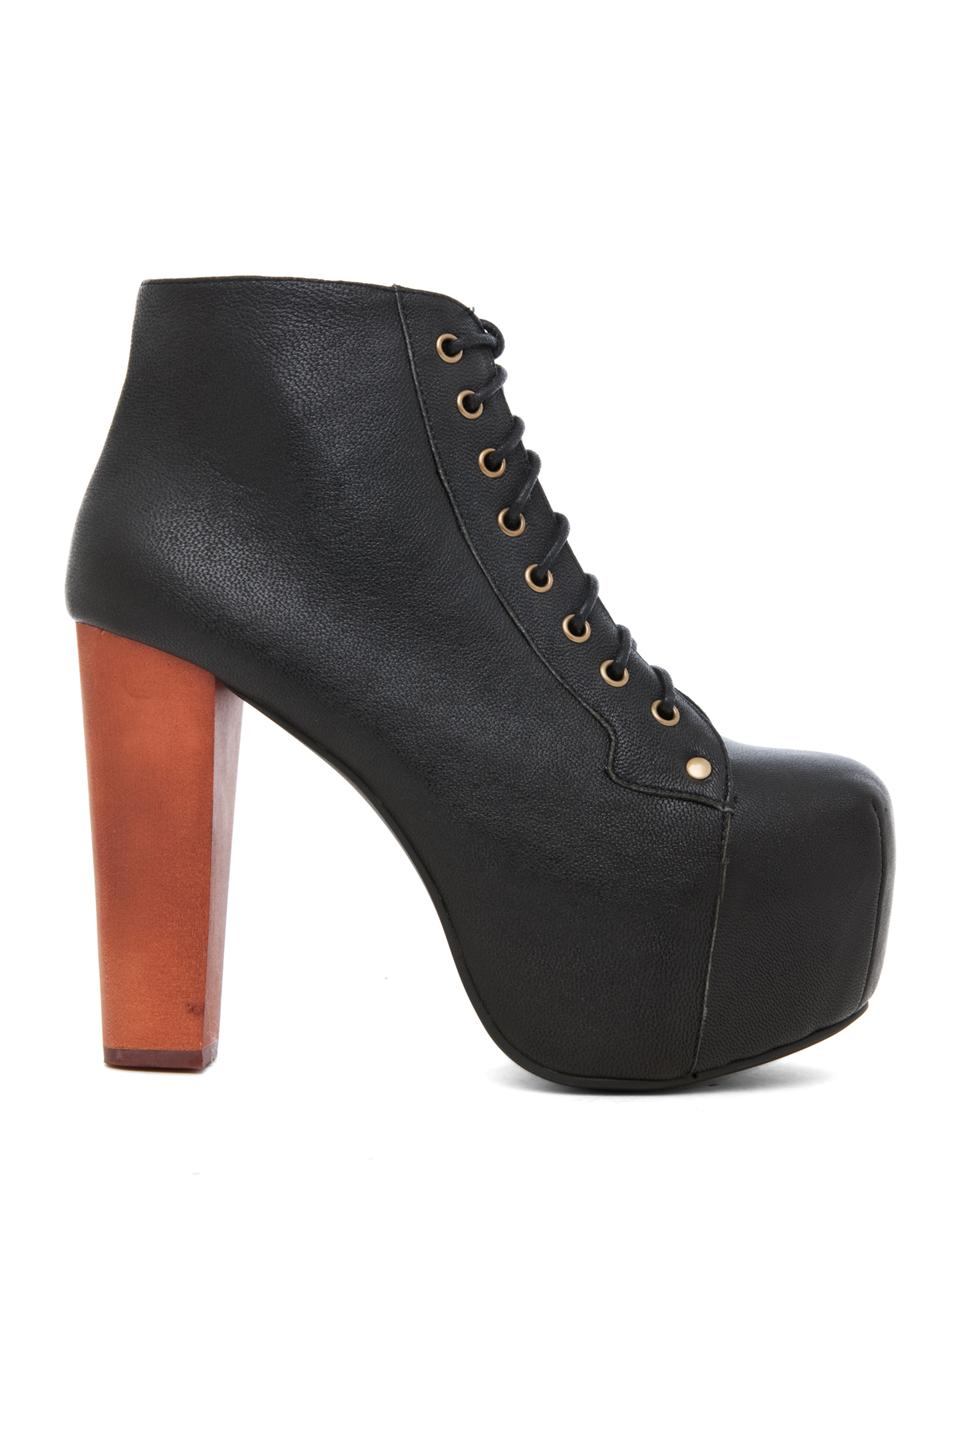 Jeffrey Campbell Lita Platform Lace Up Boot in Black | REVOLVE